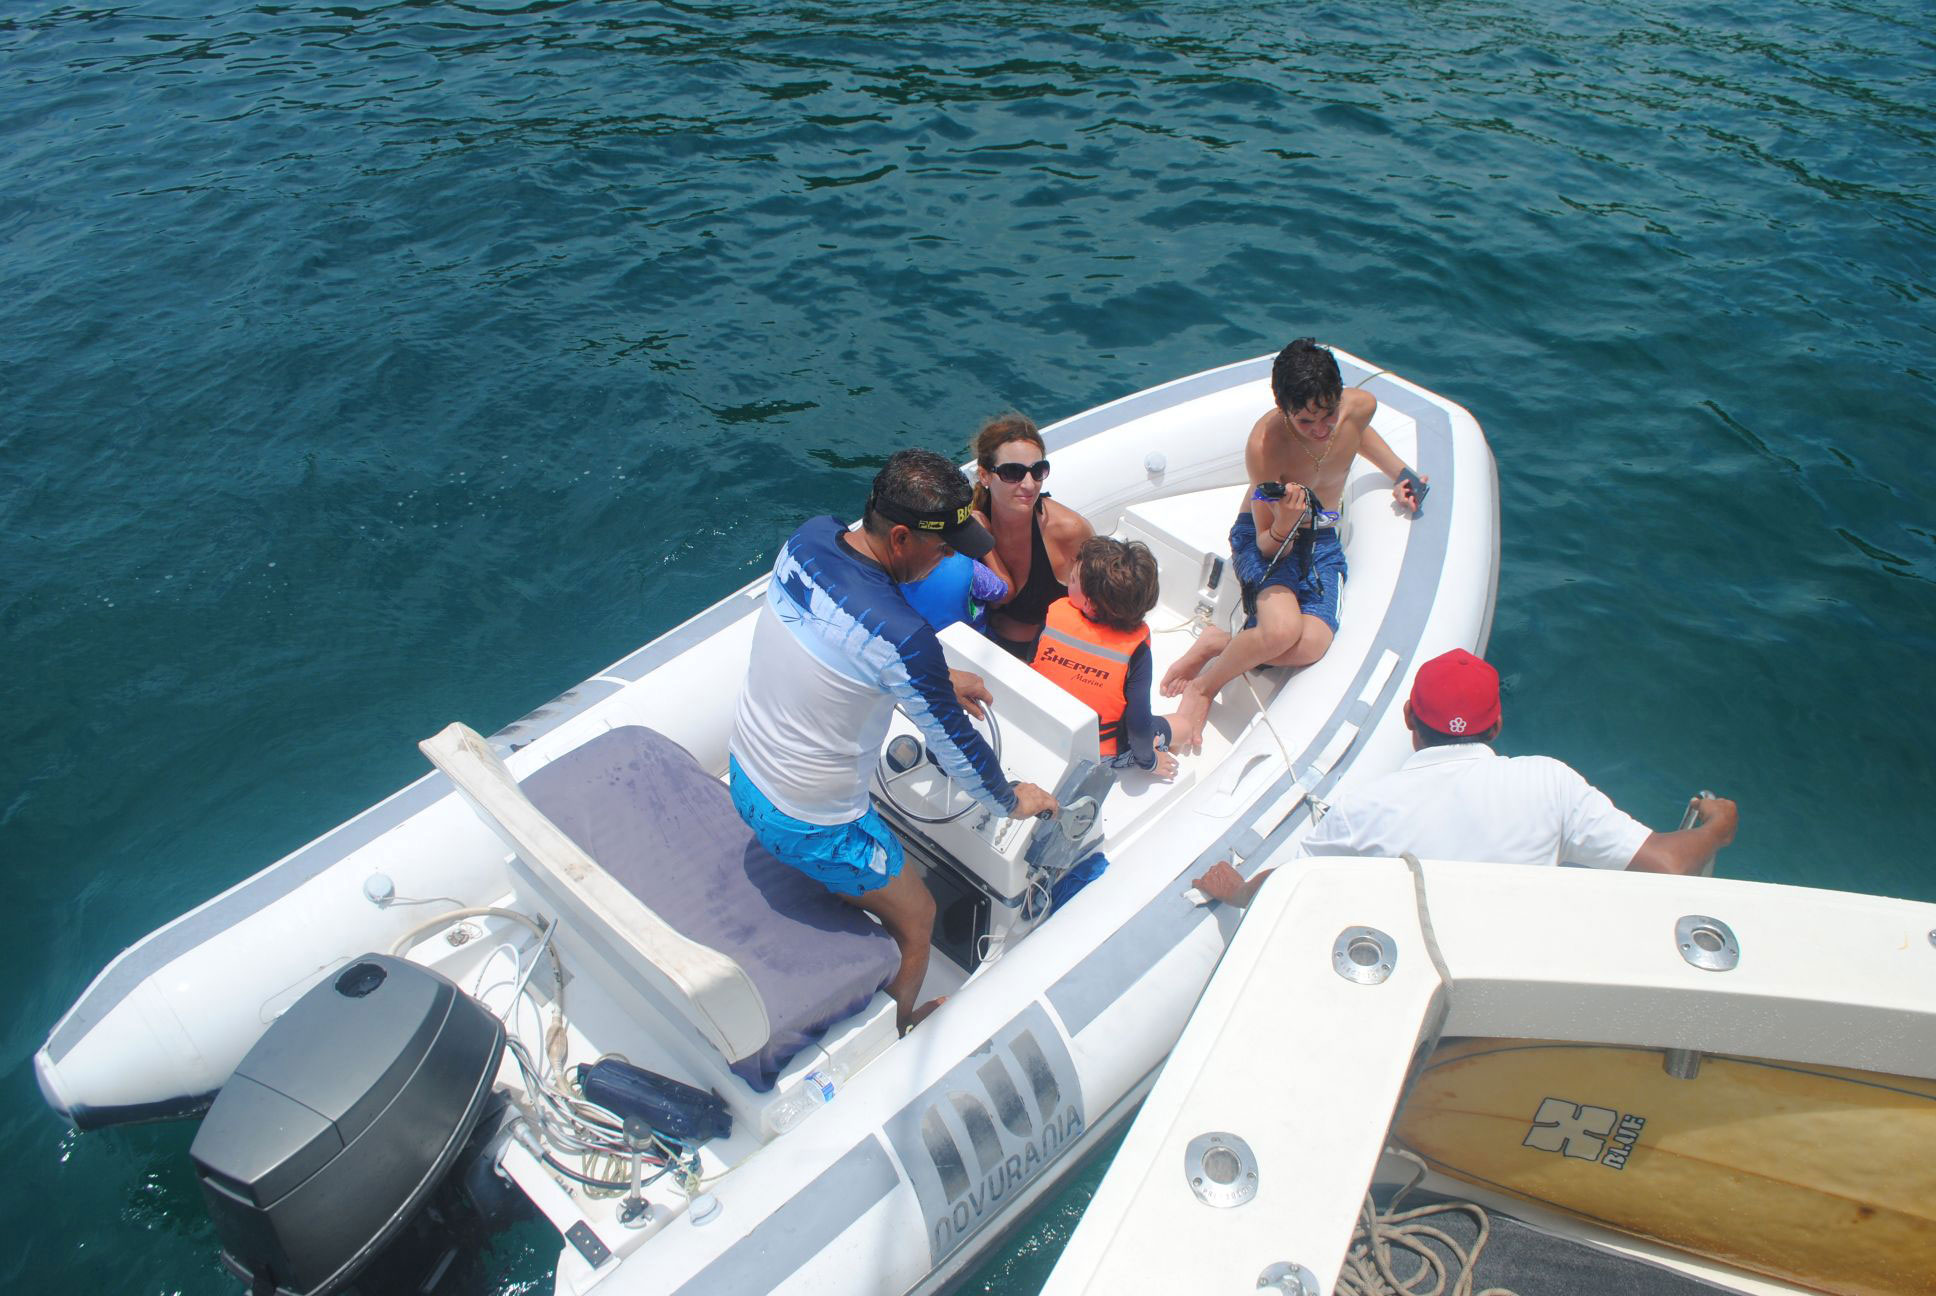 14 FT Dingy with a 40 HP Motor